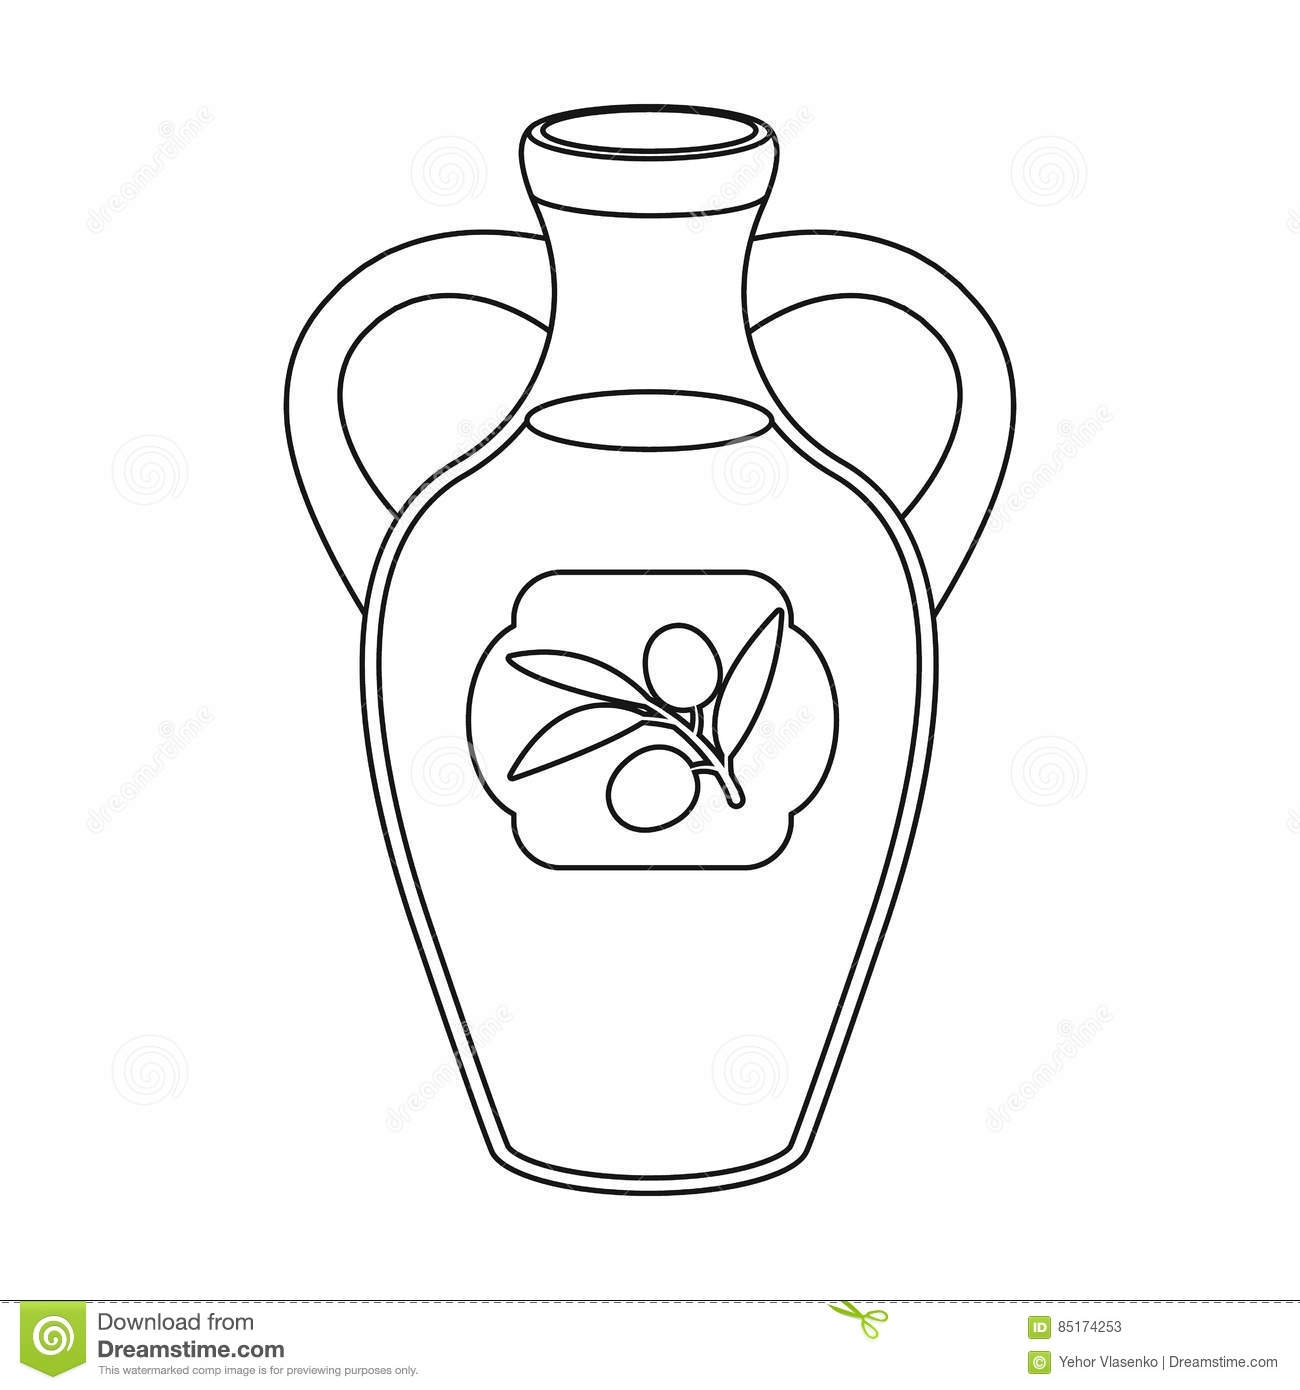 healthy food coloring pages - stock illustration bottle olive oil icon outline style isolated white background spain country symbol stock vector illustration design image